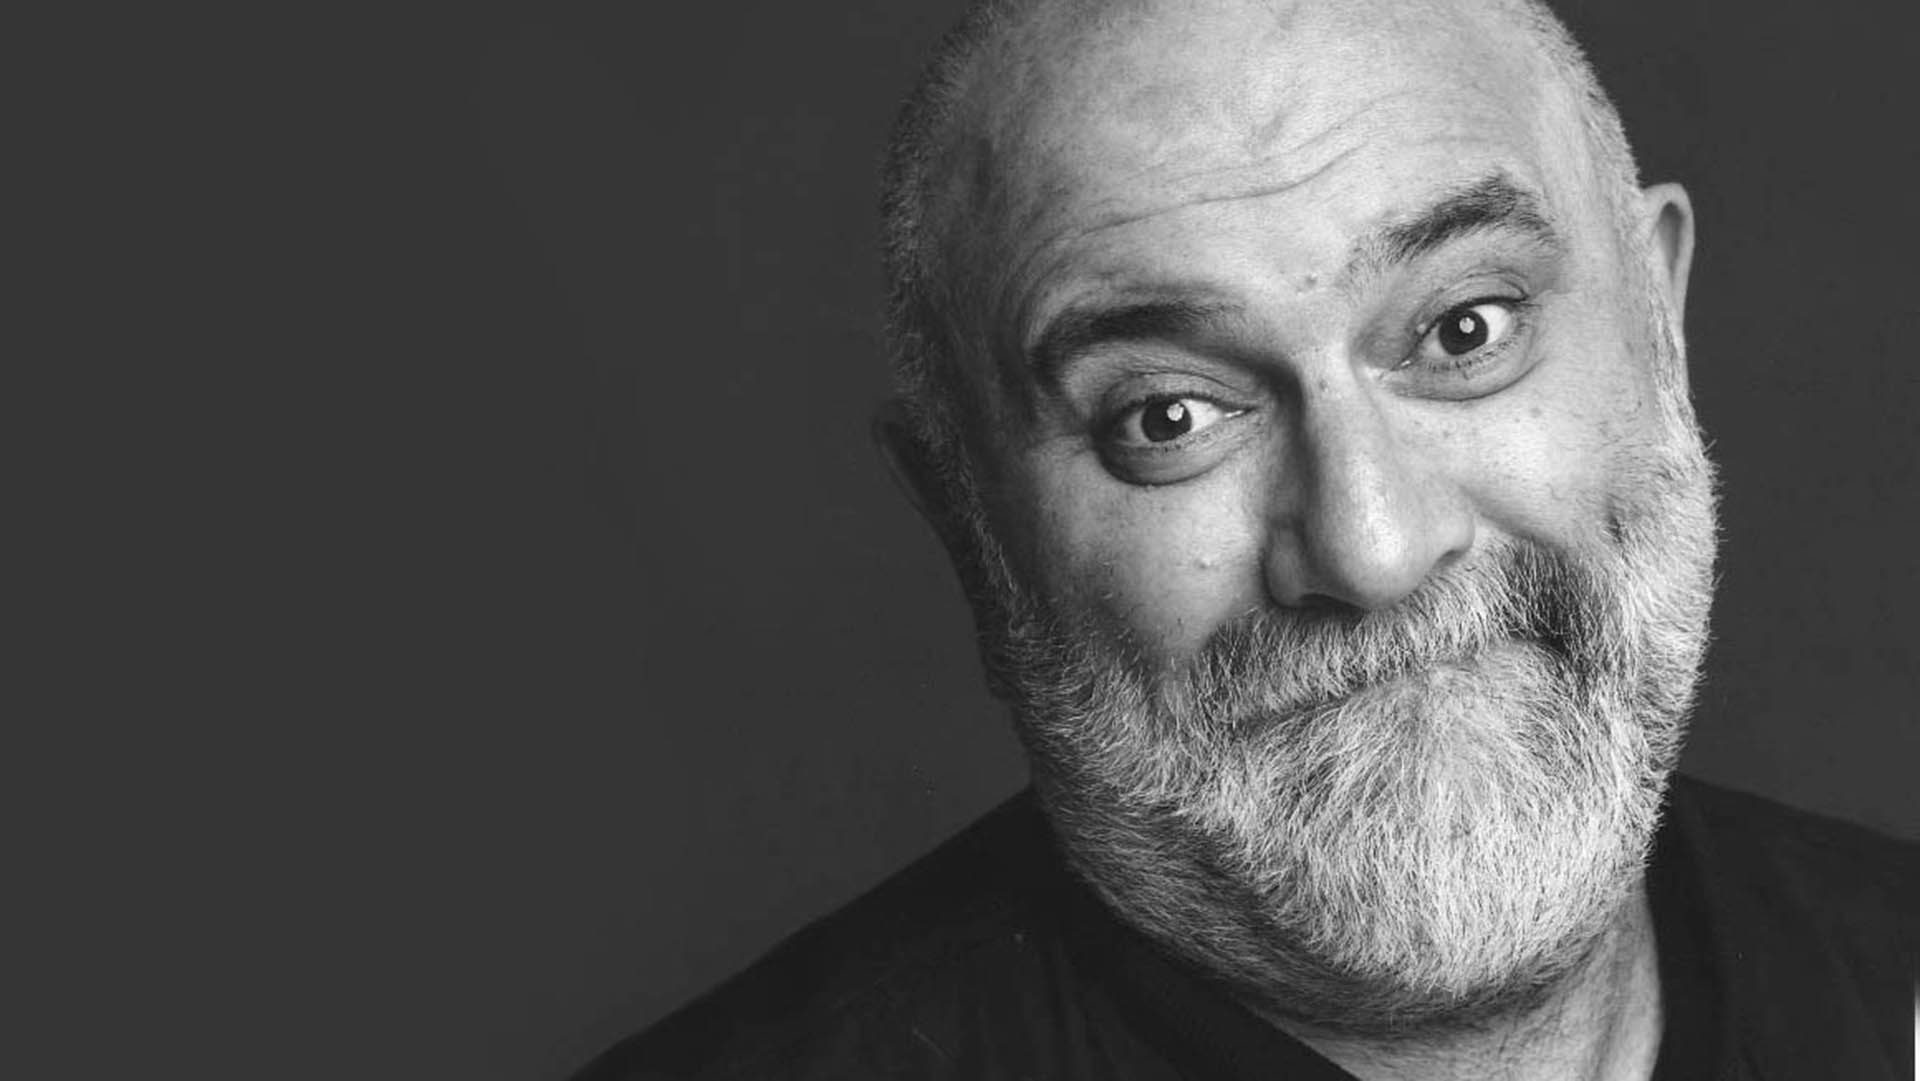 Black and white photograph of Alexei Sayle